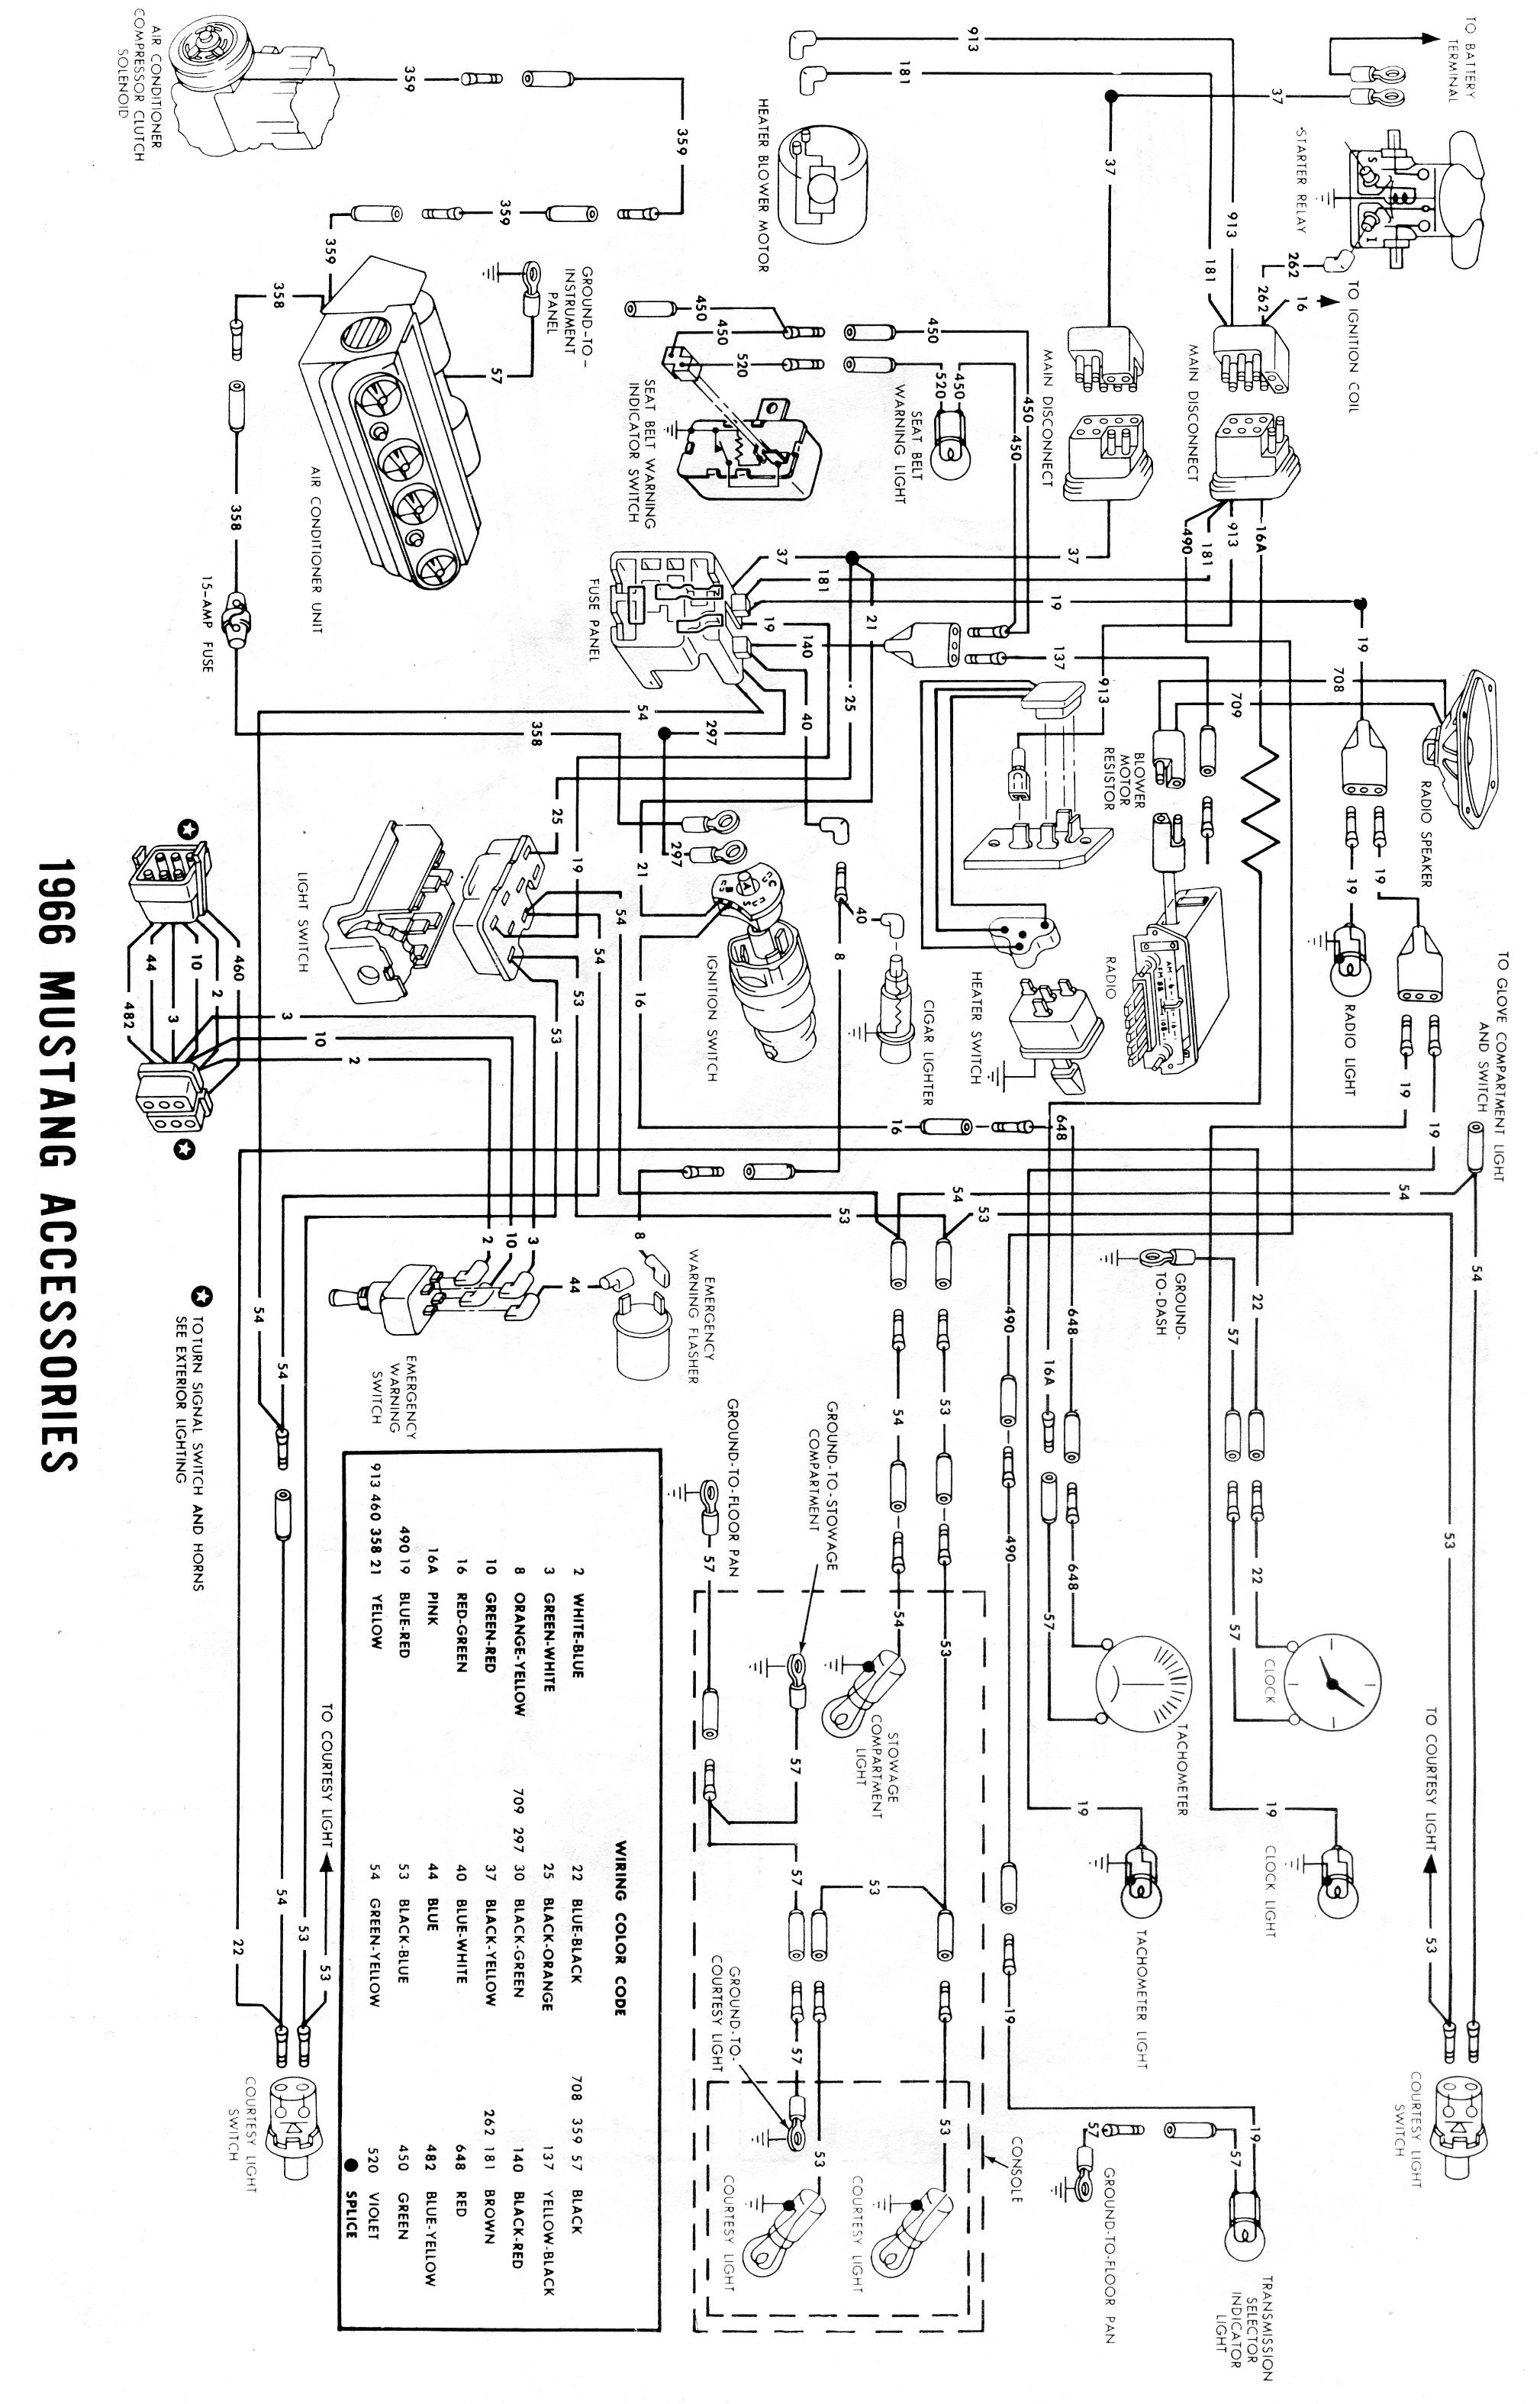 112954d1286846513 why does my instrument fuse keep blowing out mustang wiring 300dpi003 1968 mustang wiring diagrams and vacuum schematics average joe traeger wiring schematic at sewacar.co